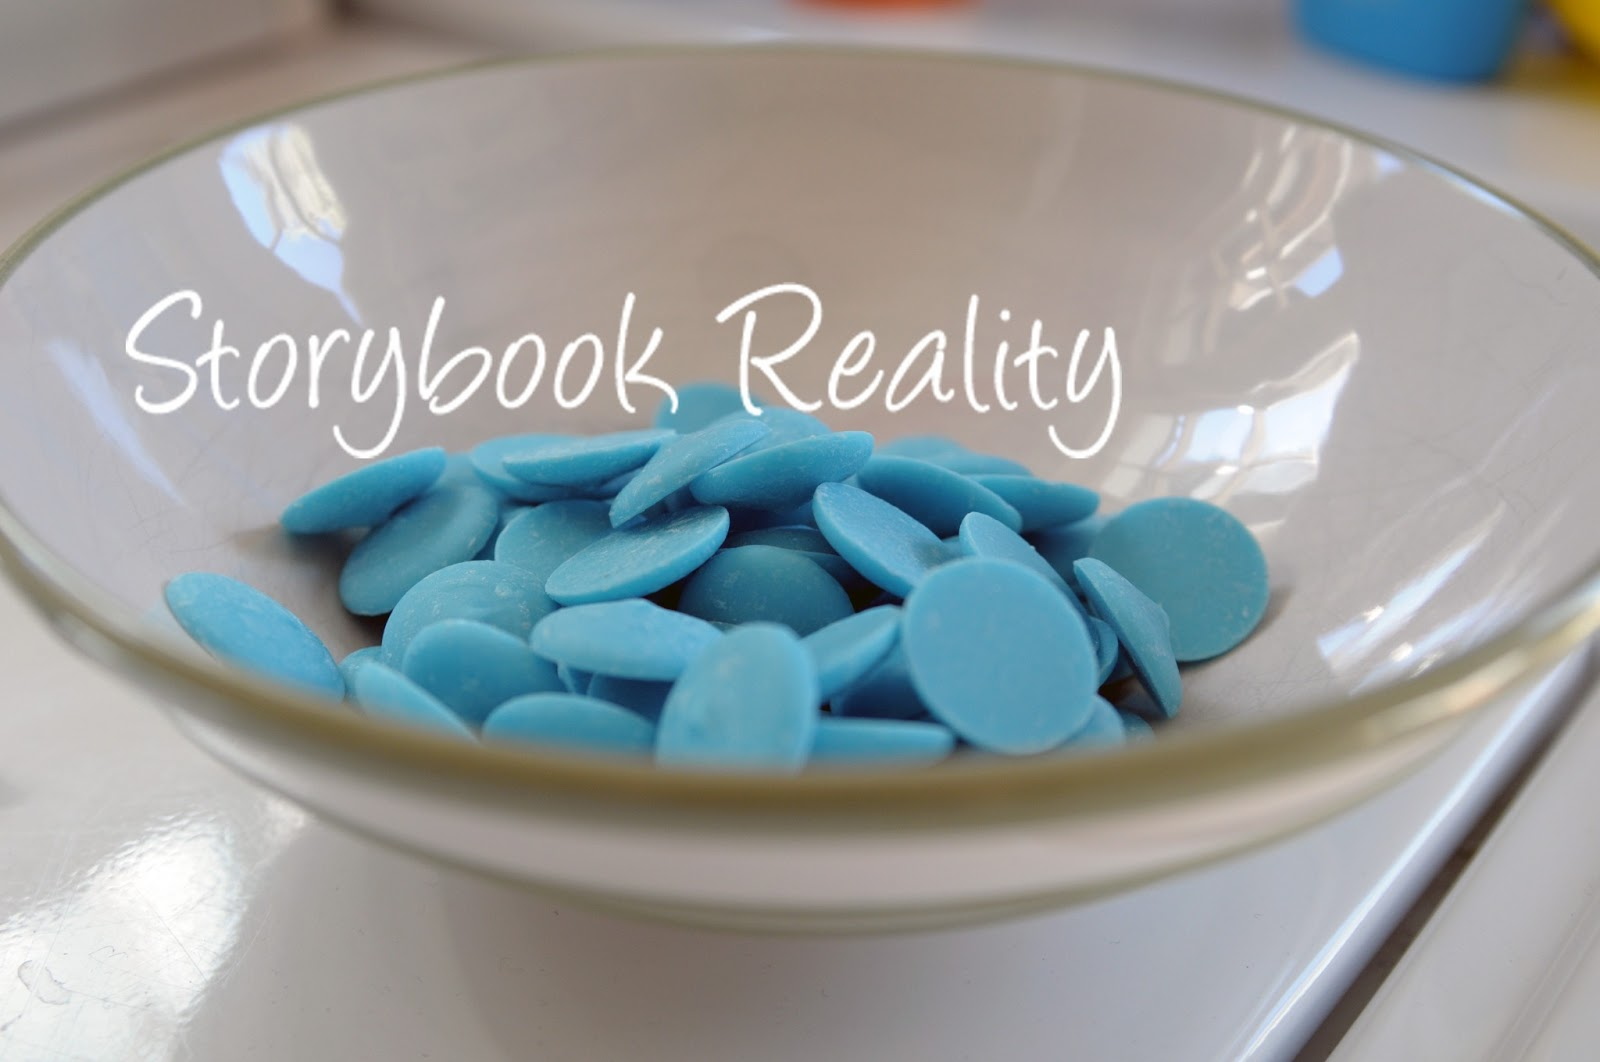 Laura @Storybook Reality: How To Make Modeling Chocolate